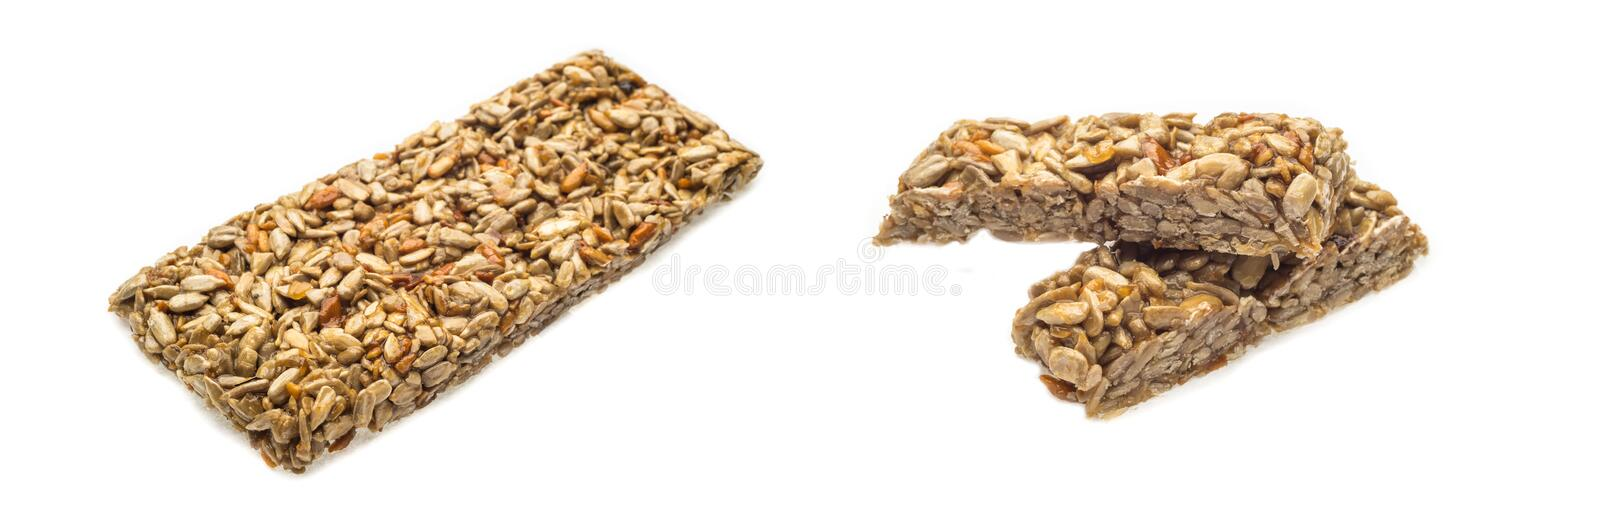 Collage tasty dietary food crispy cracker with sunflower seeds isolated on white background stock photography